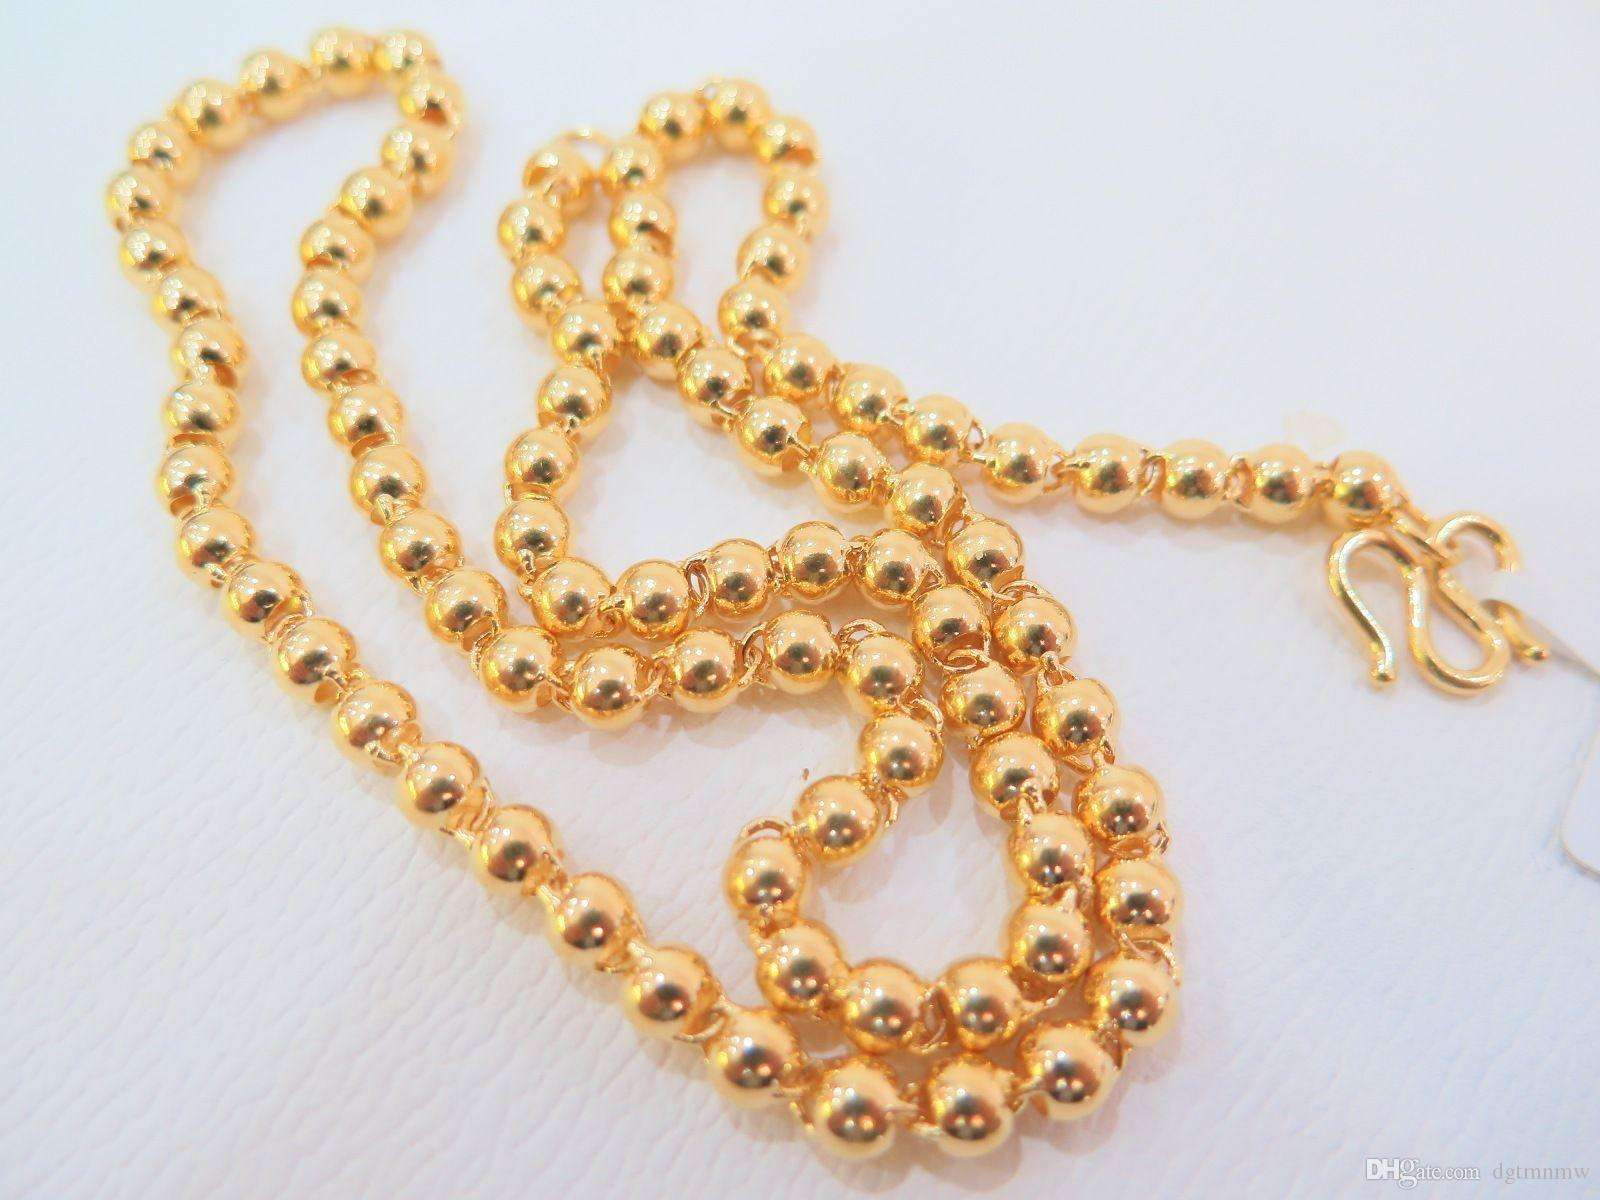 Wholesale Pure 24k Yellow Gold Necklace Women Men Luck 4mmw Smooth